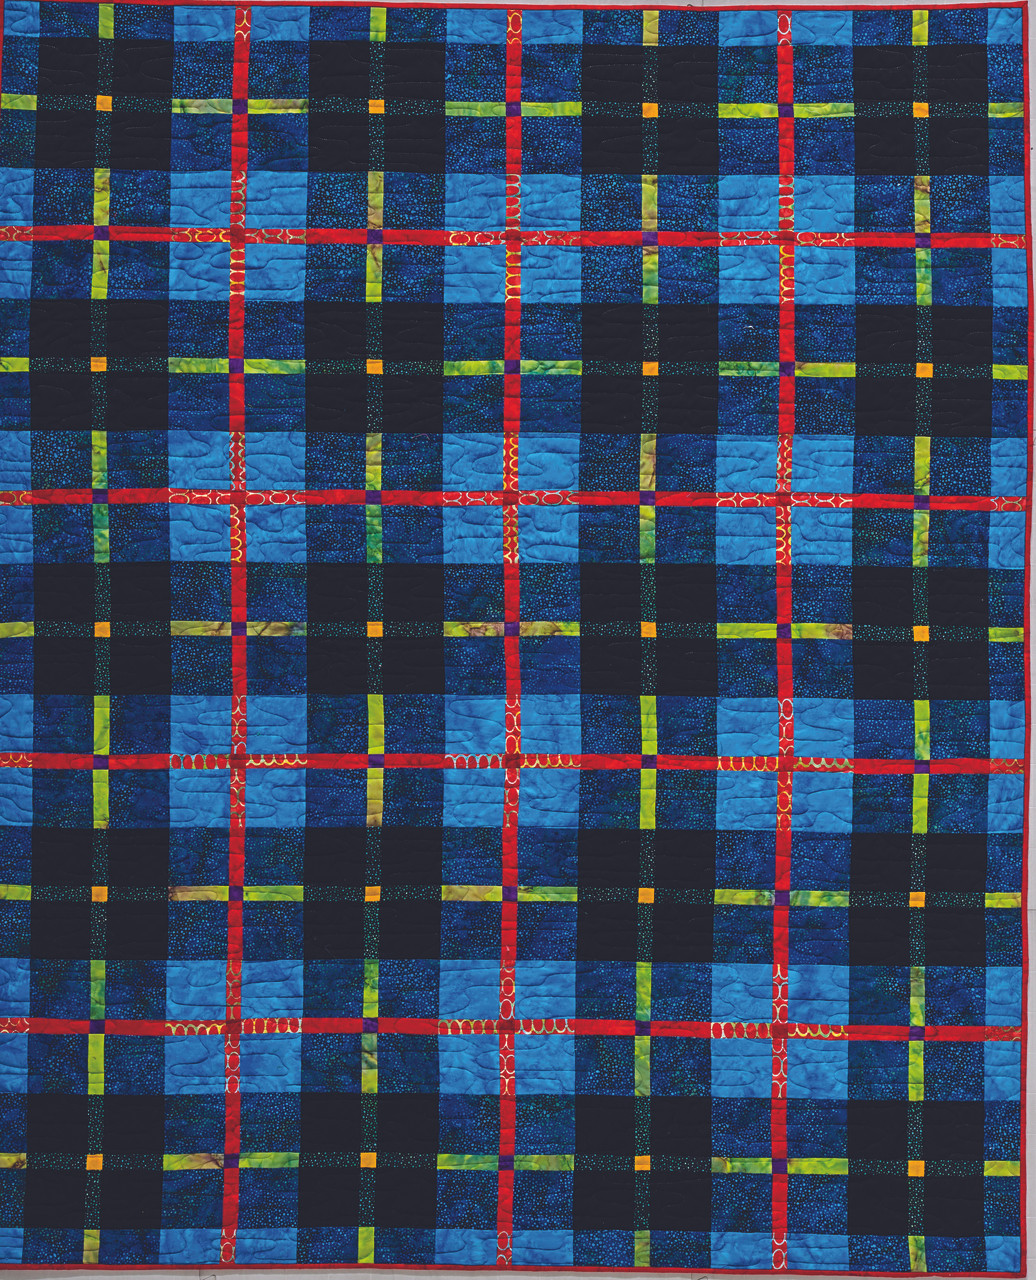 Do you love Outlander? Do you have Scottish heritage? Learn to make modern, graphic quilts based on the woven patterns of traditional tartans of Scotland!